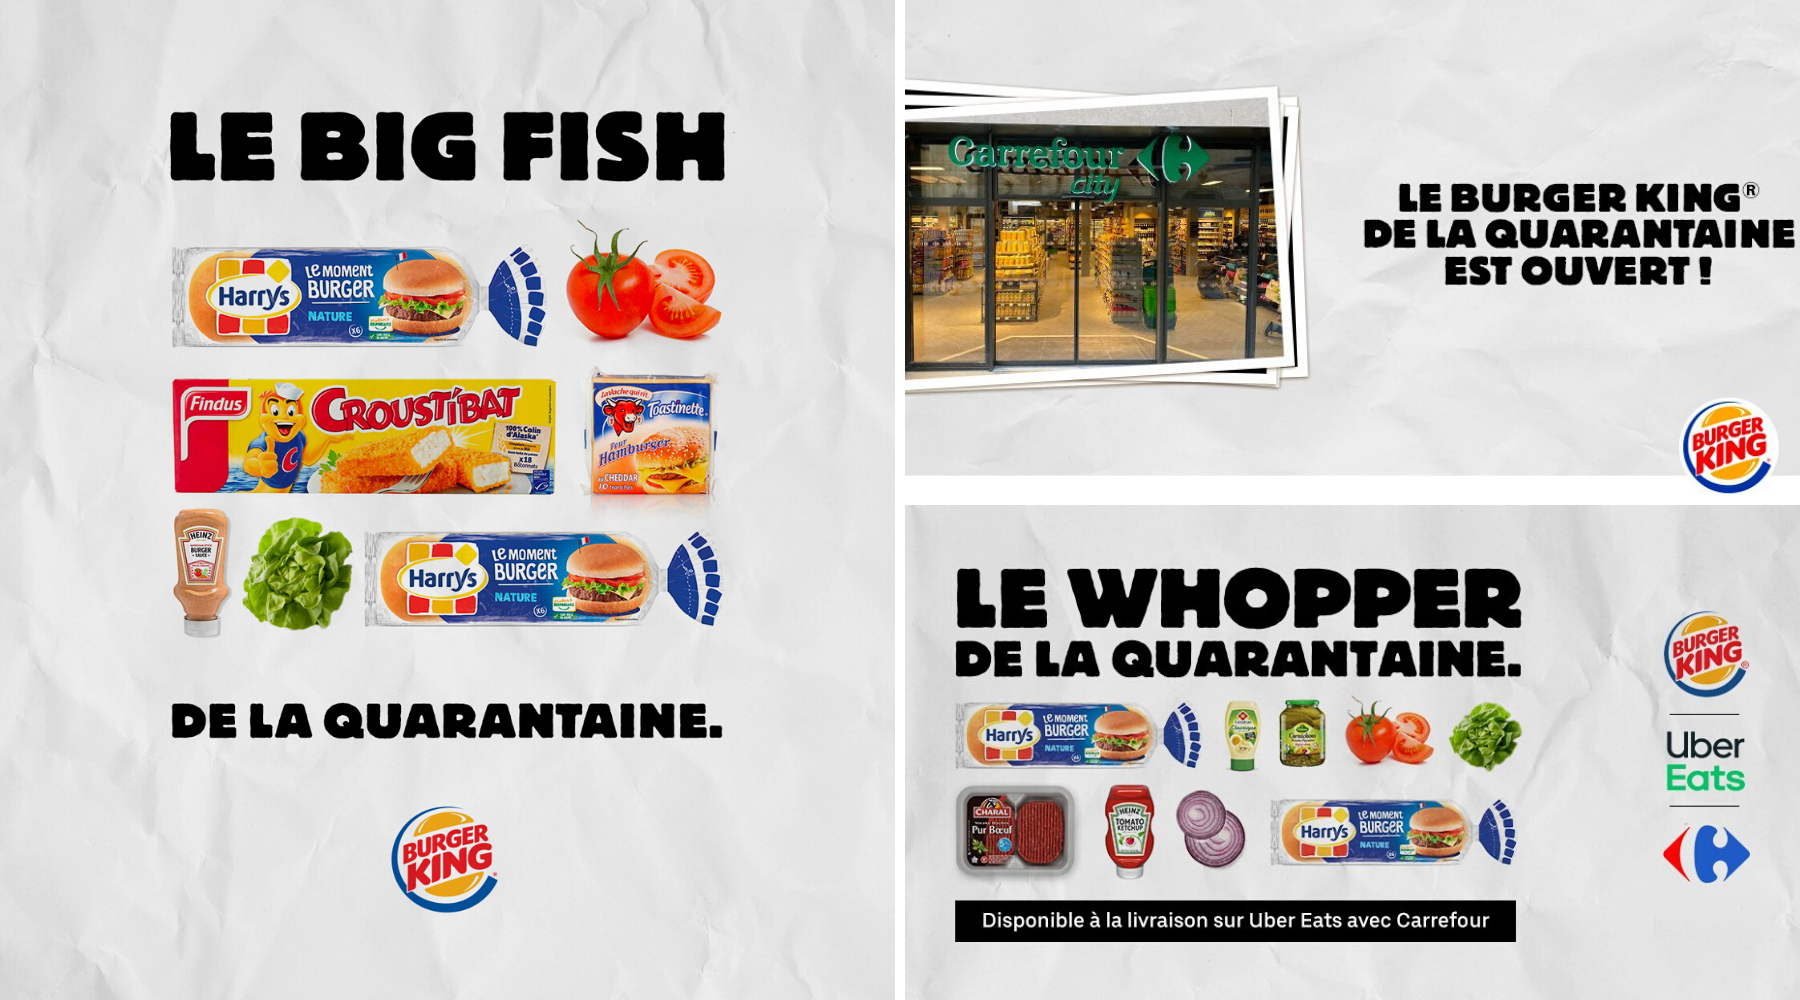 Burger King communication-restaurants-drive-livraison-burgers-réseaux sociaux-Instagram-Facebook-Twitter-confinement-covid-19-communication-promotion-mesures-street marketing-réouverture